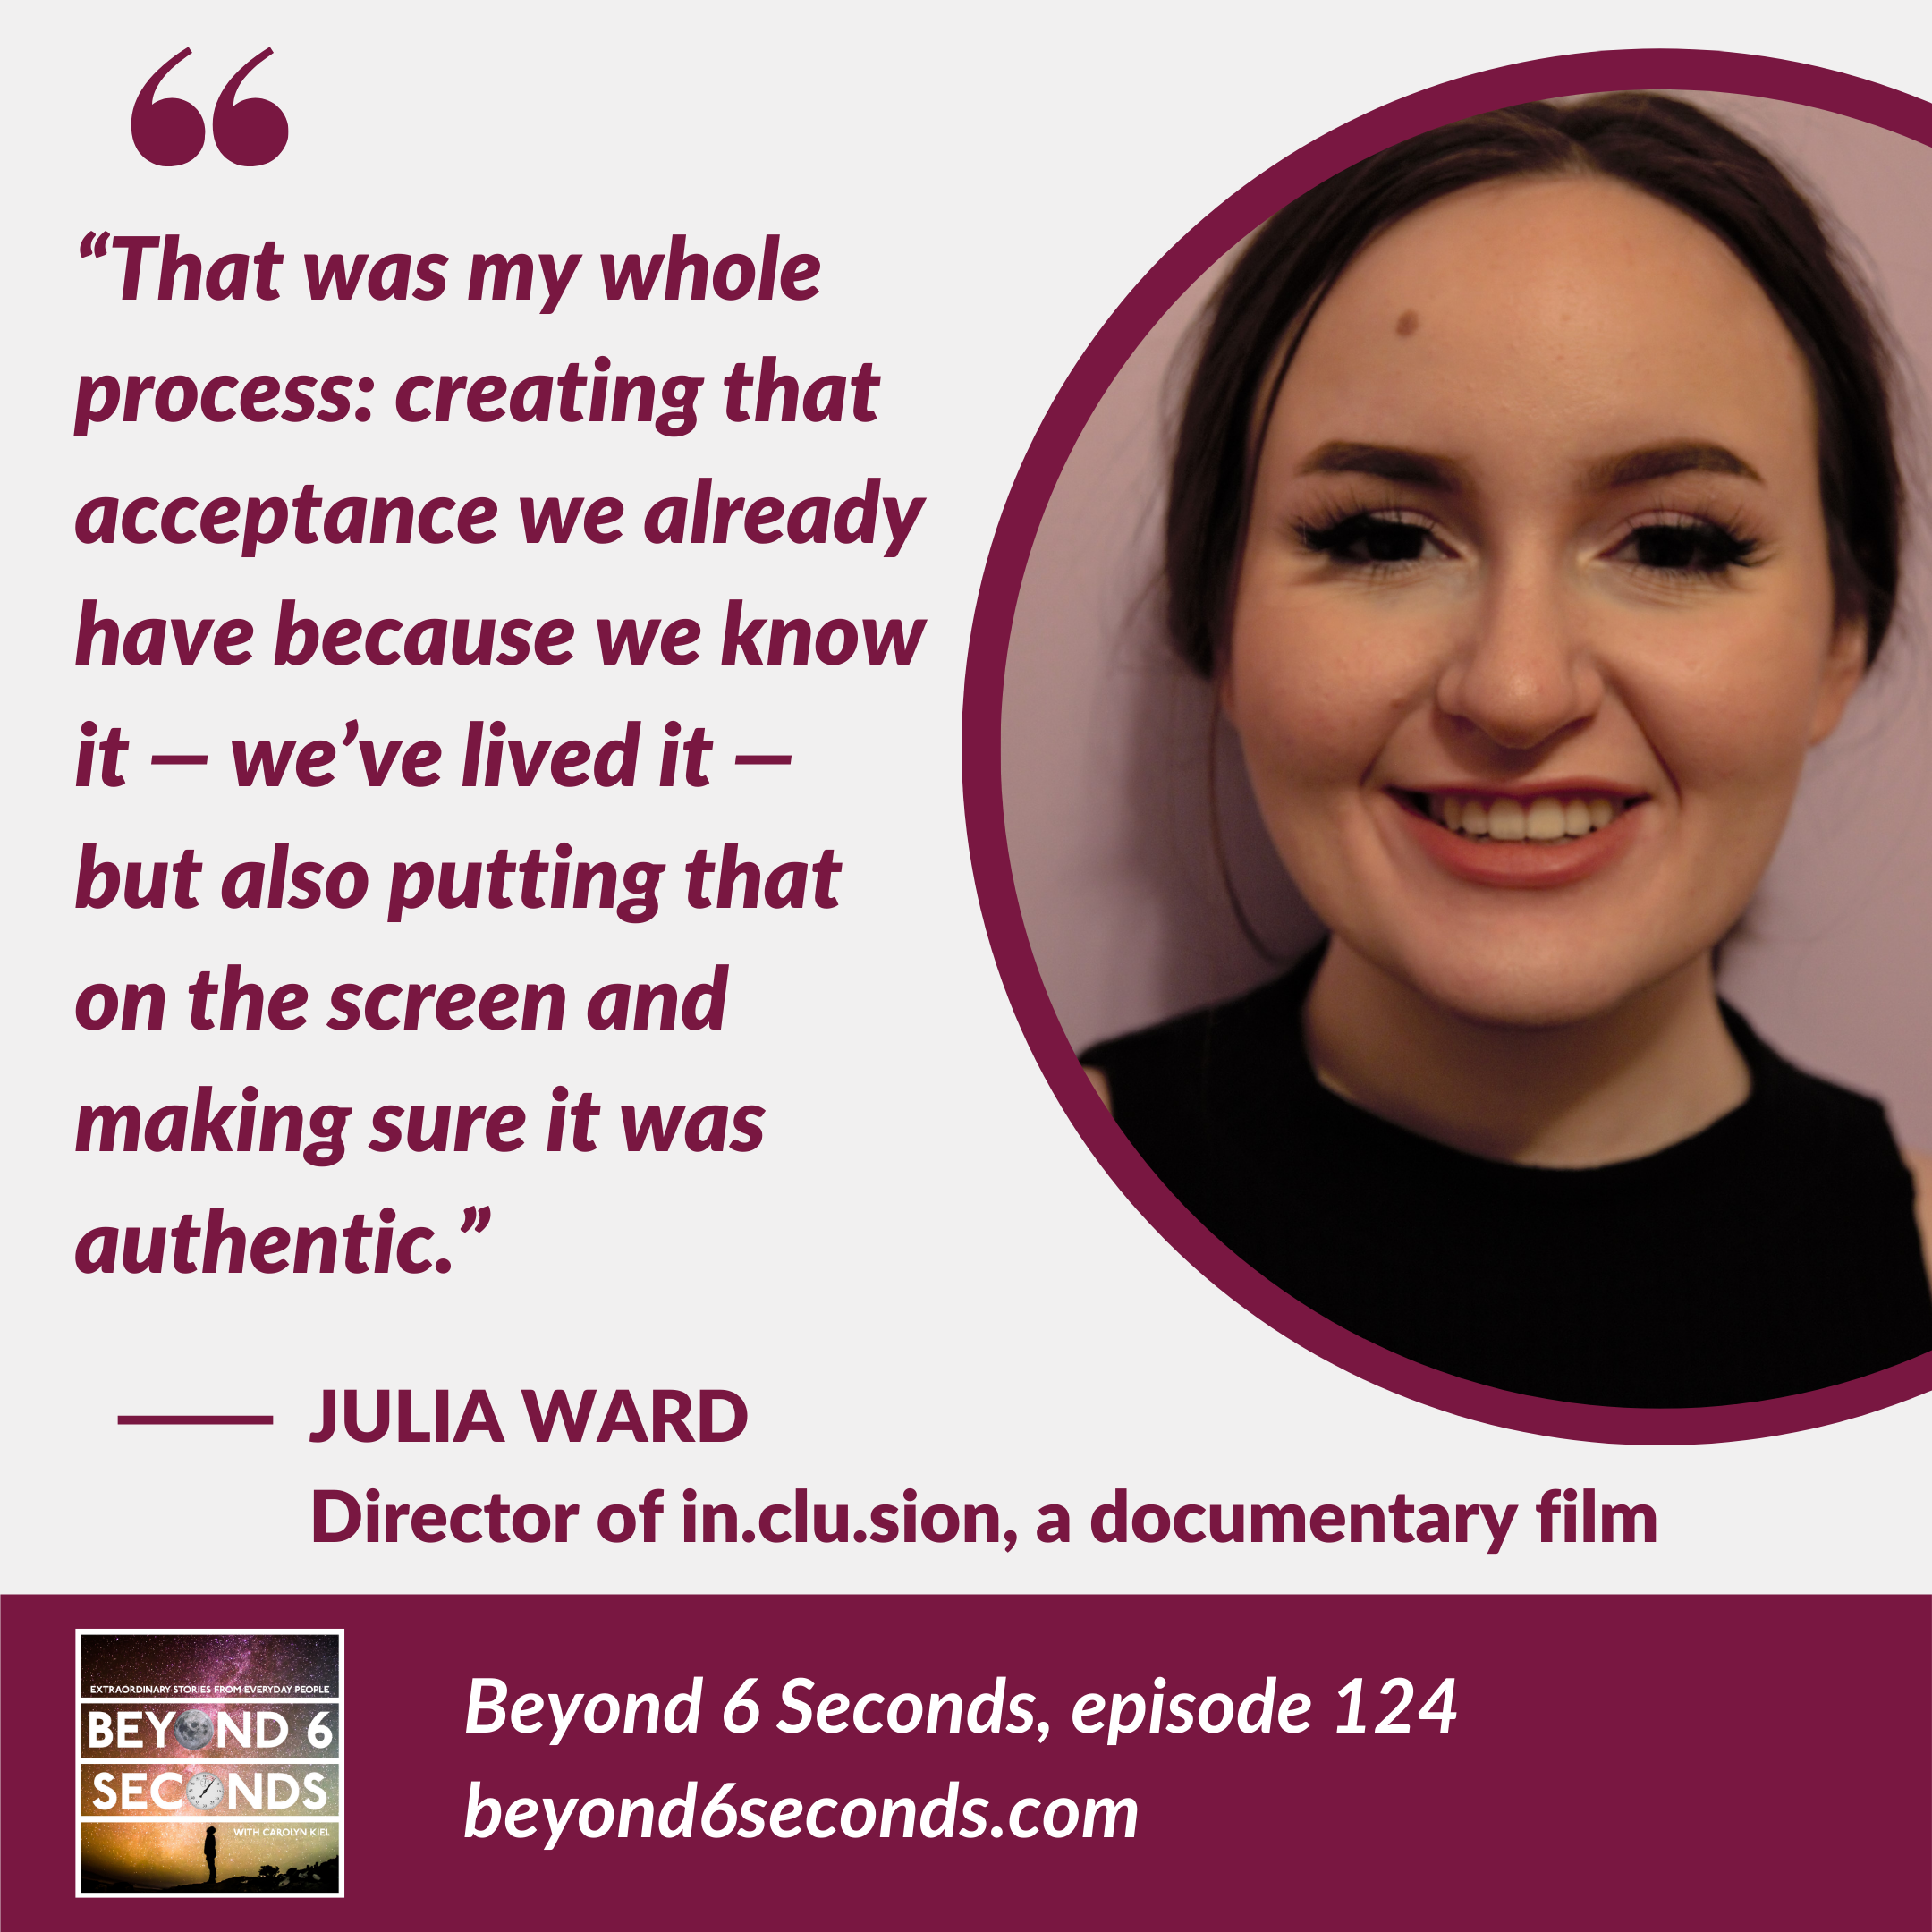 A quote from Julia's episode of Beyond 6 Seconds, next to a photo of Julia.